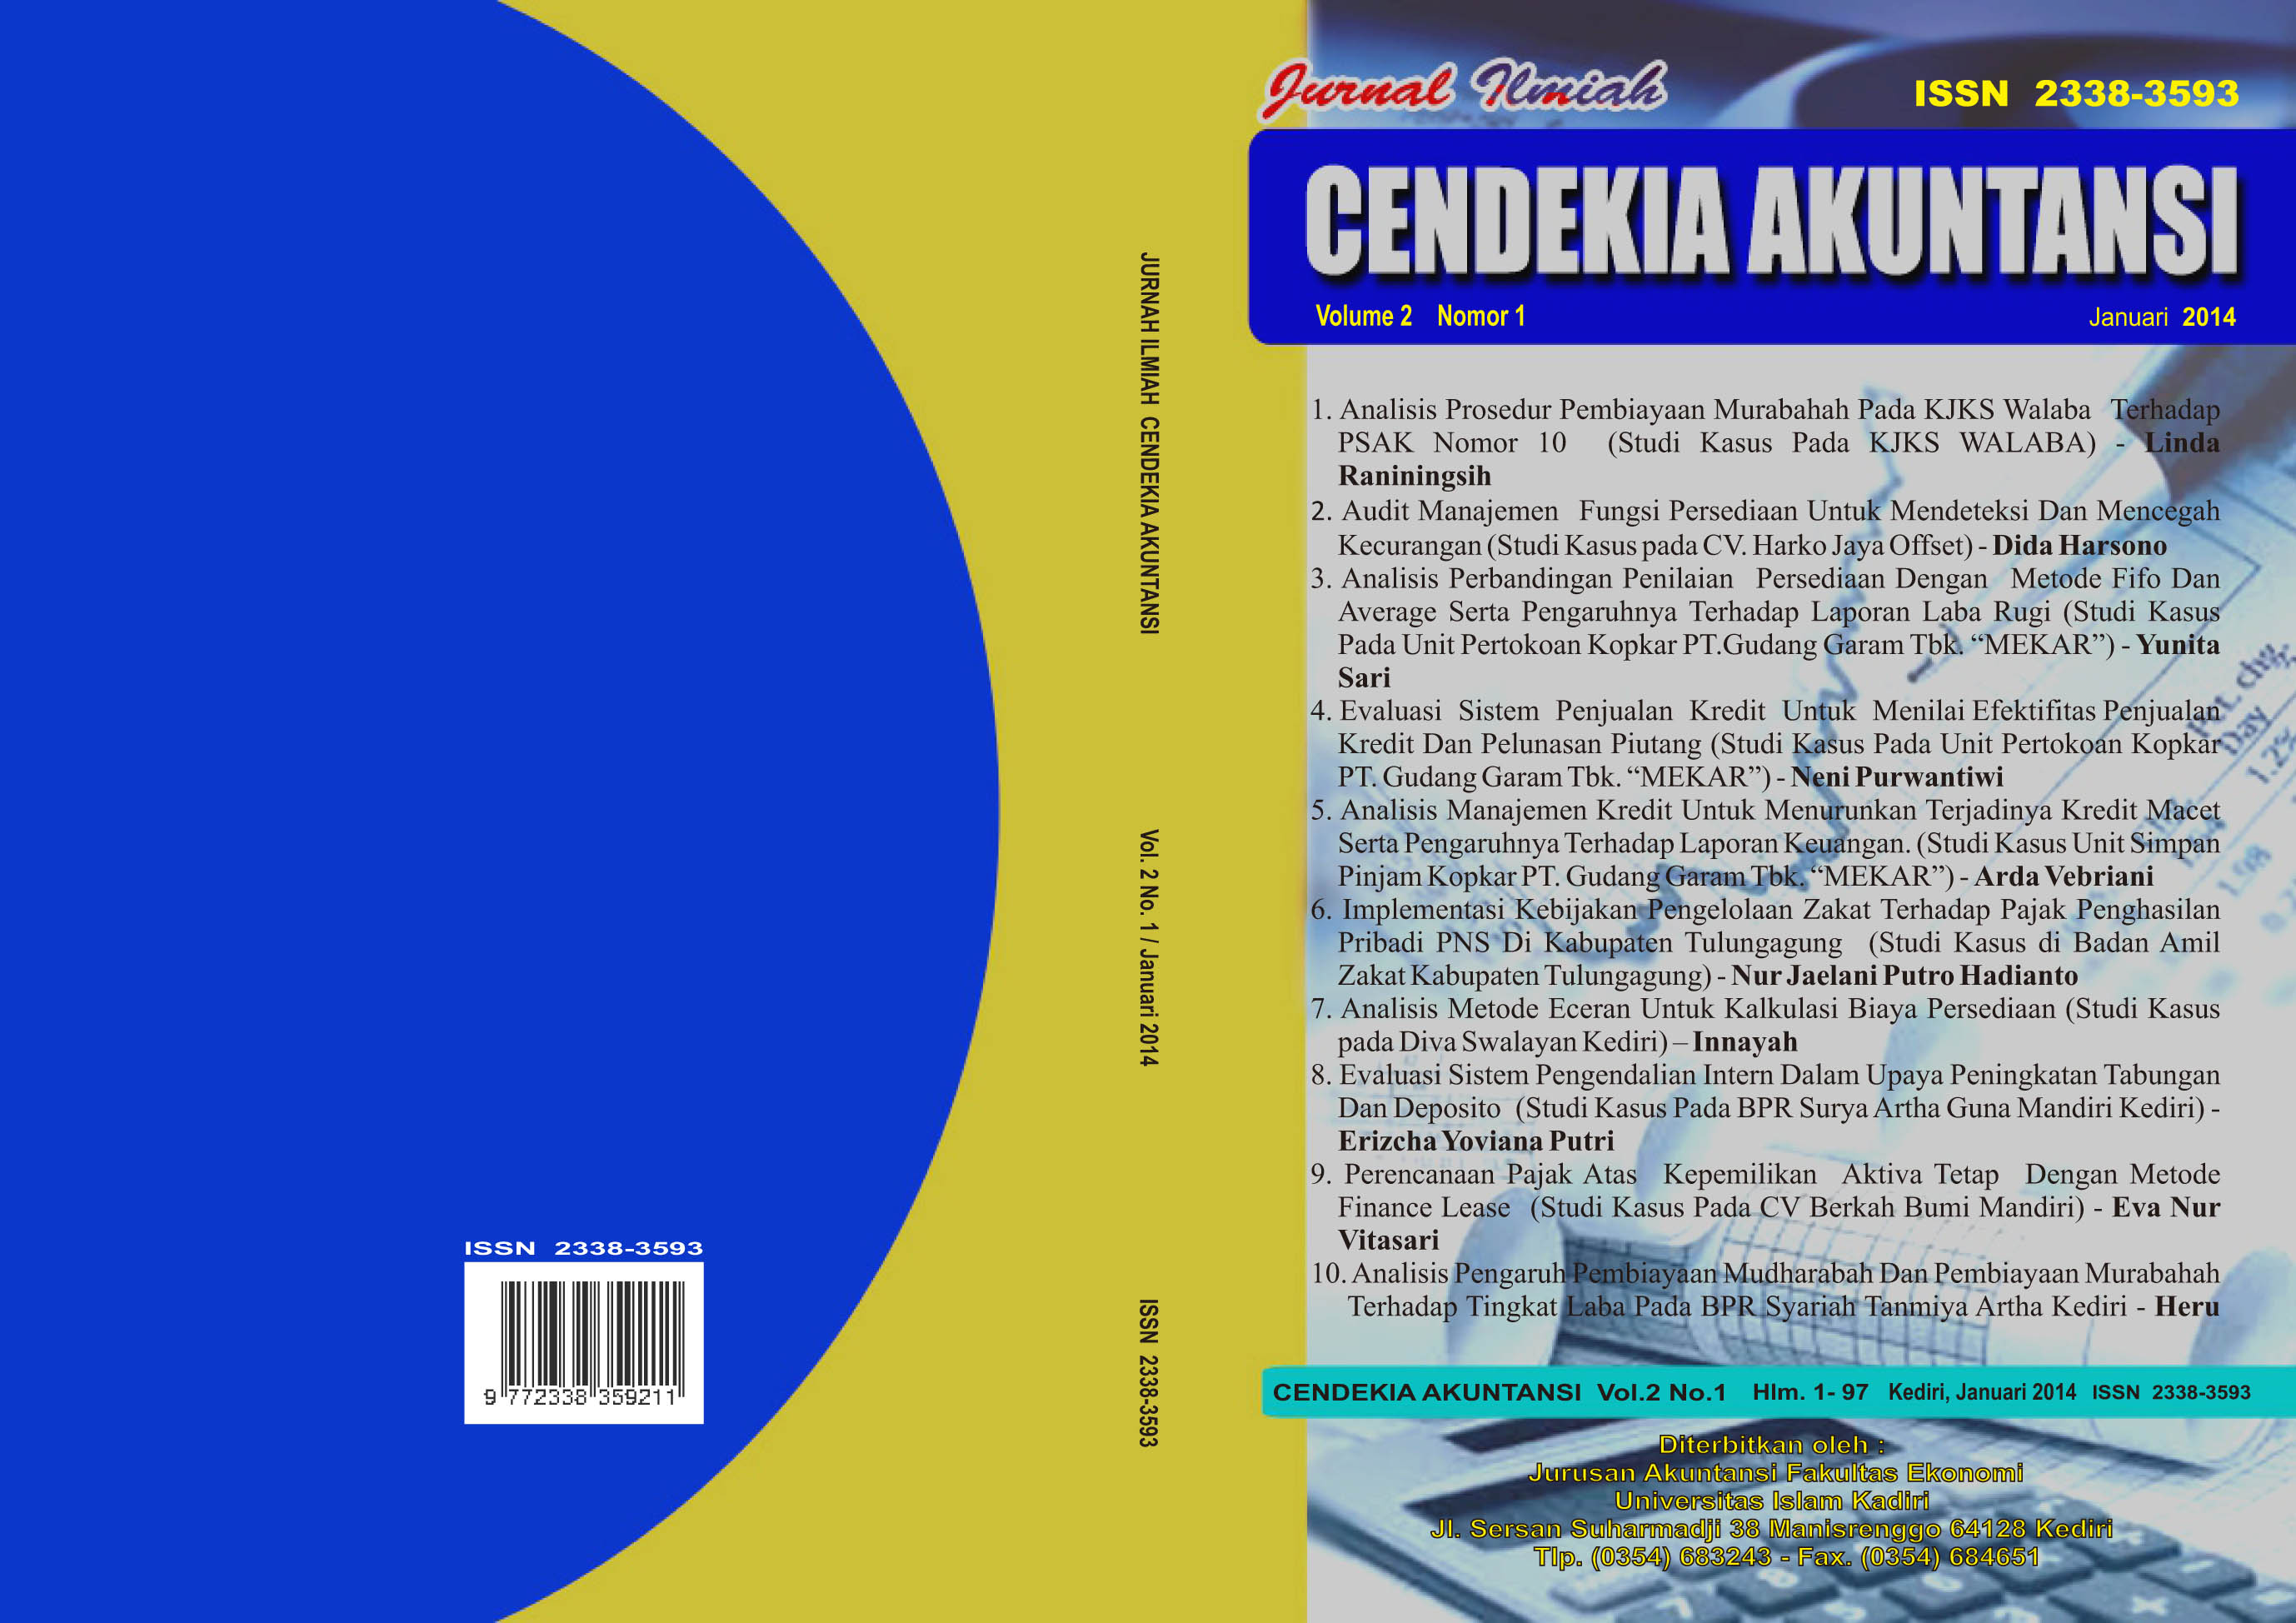 Cendekia Akuntansi Vol 2 No 1 Januari 2014